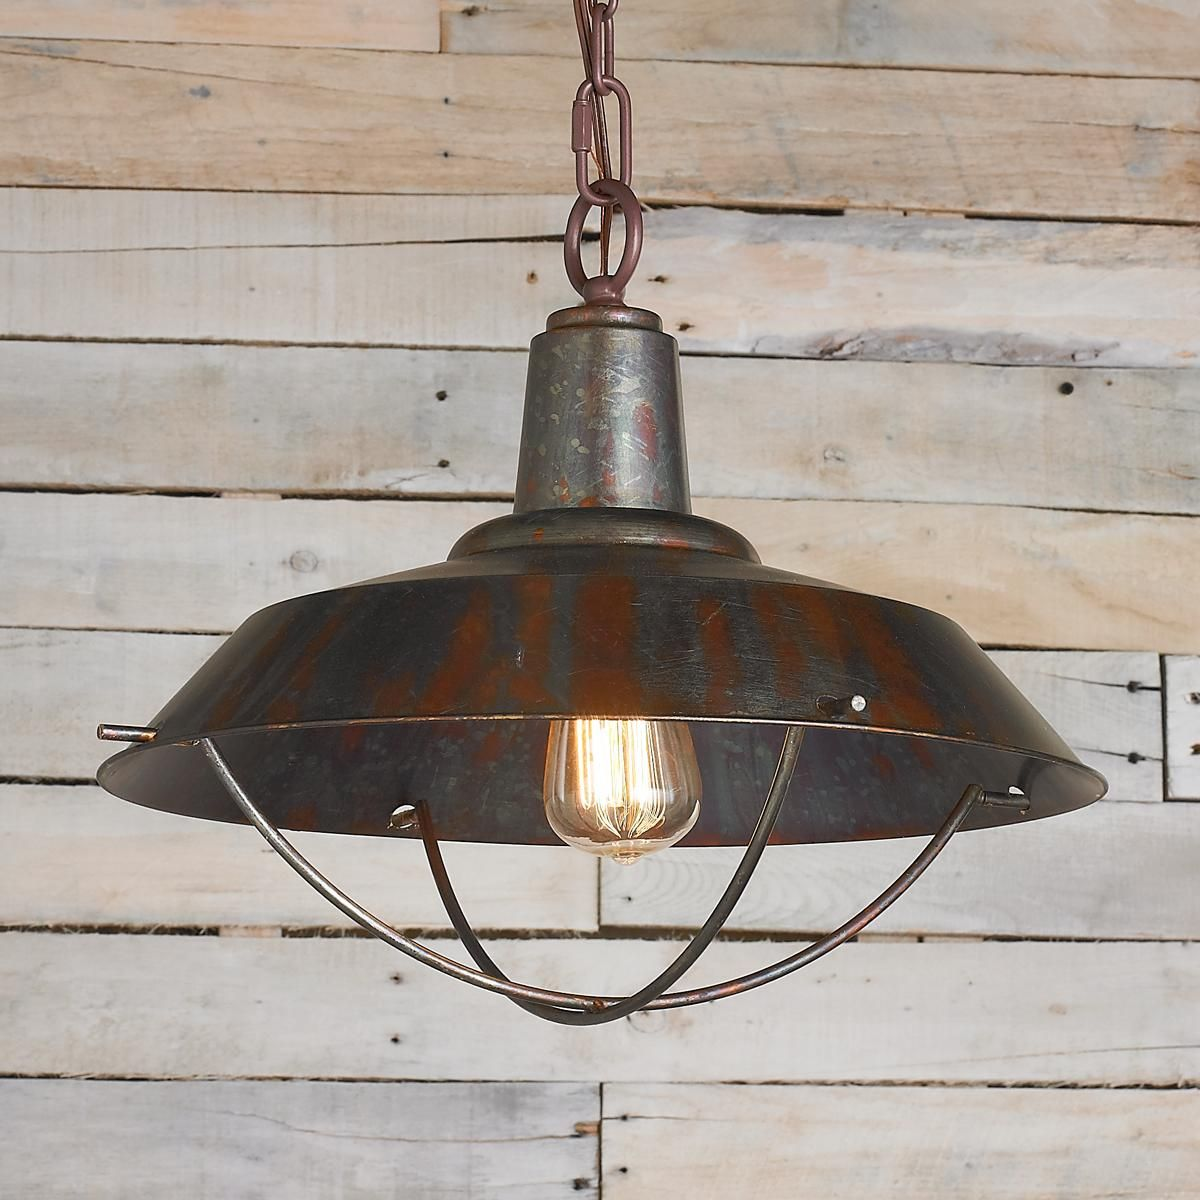 Rustic Copper Pendant With Grill